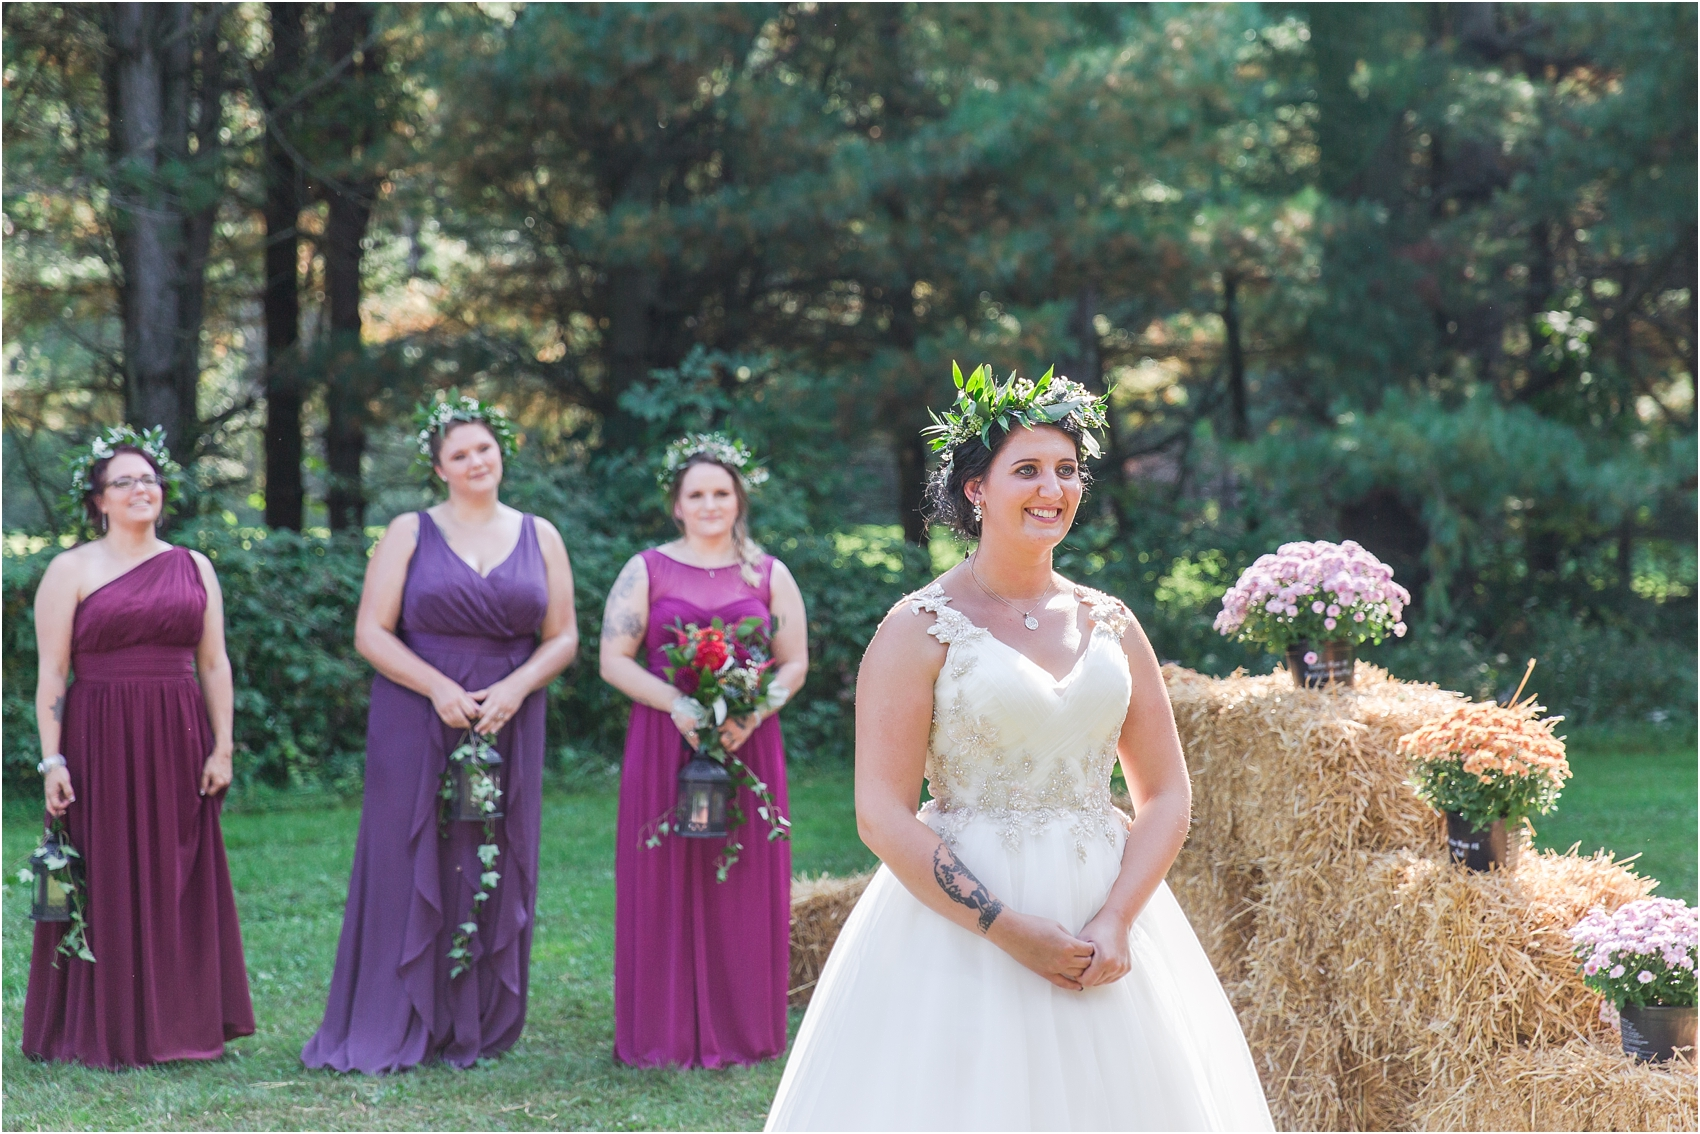 scottish-inspired-wedding-photos-in-the-country-in-port-sanilac-michigan-by-courtney-carolyn-photography_0024.jpg